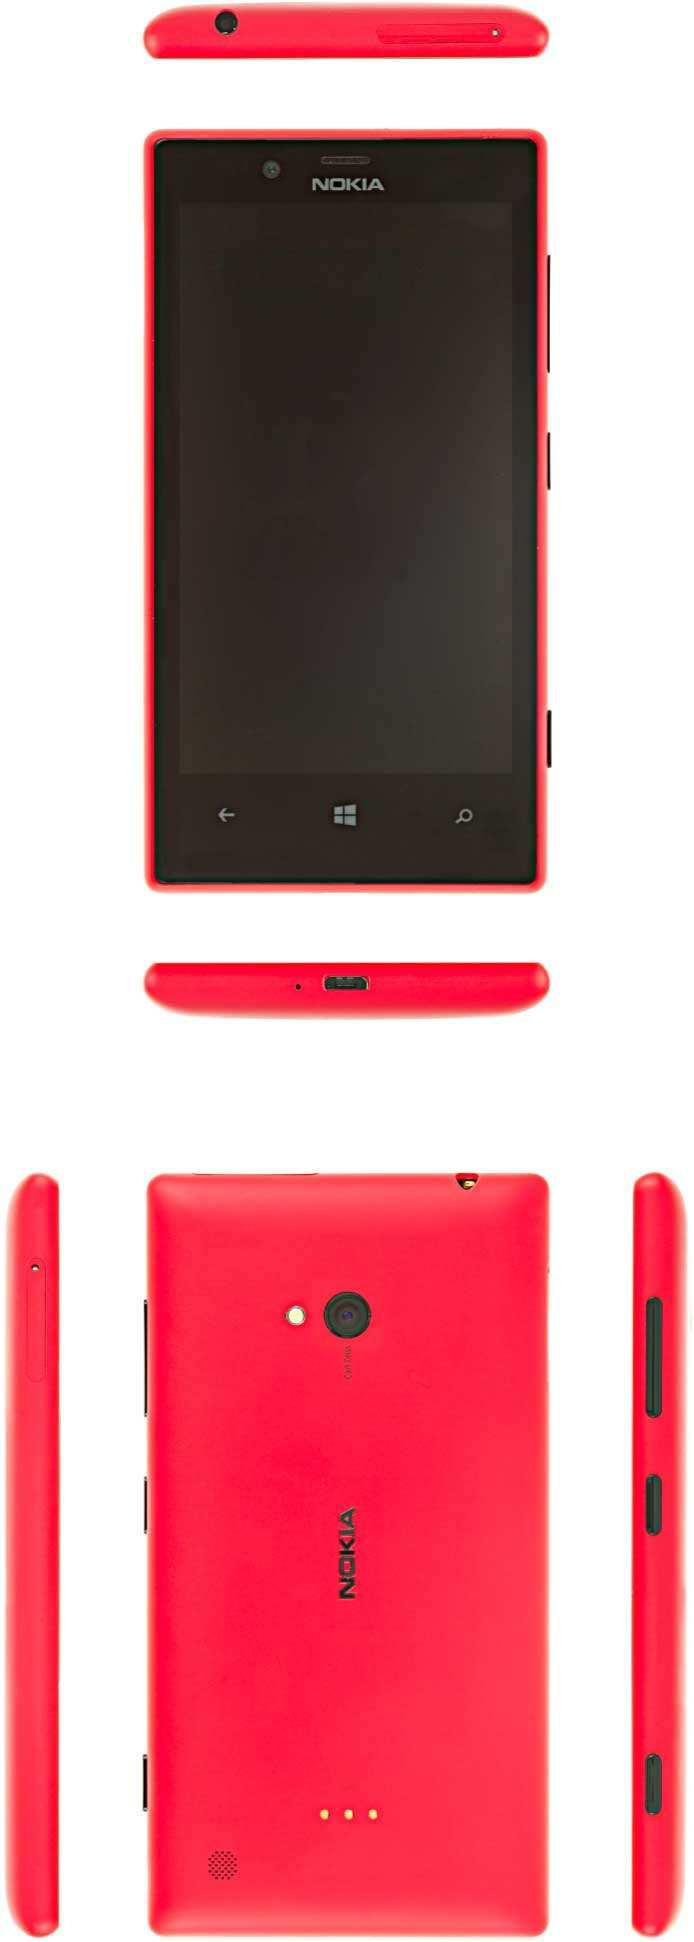 Service Manual Level 1 and 2 Nokia Lumia 720 RM-885 Version 1.0 Product controls and interfaces 1 3 5 7 11 12 13 14 15 2 4 6 8 9 10 1 Nokia AV 3.